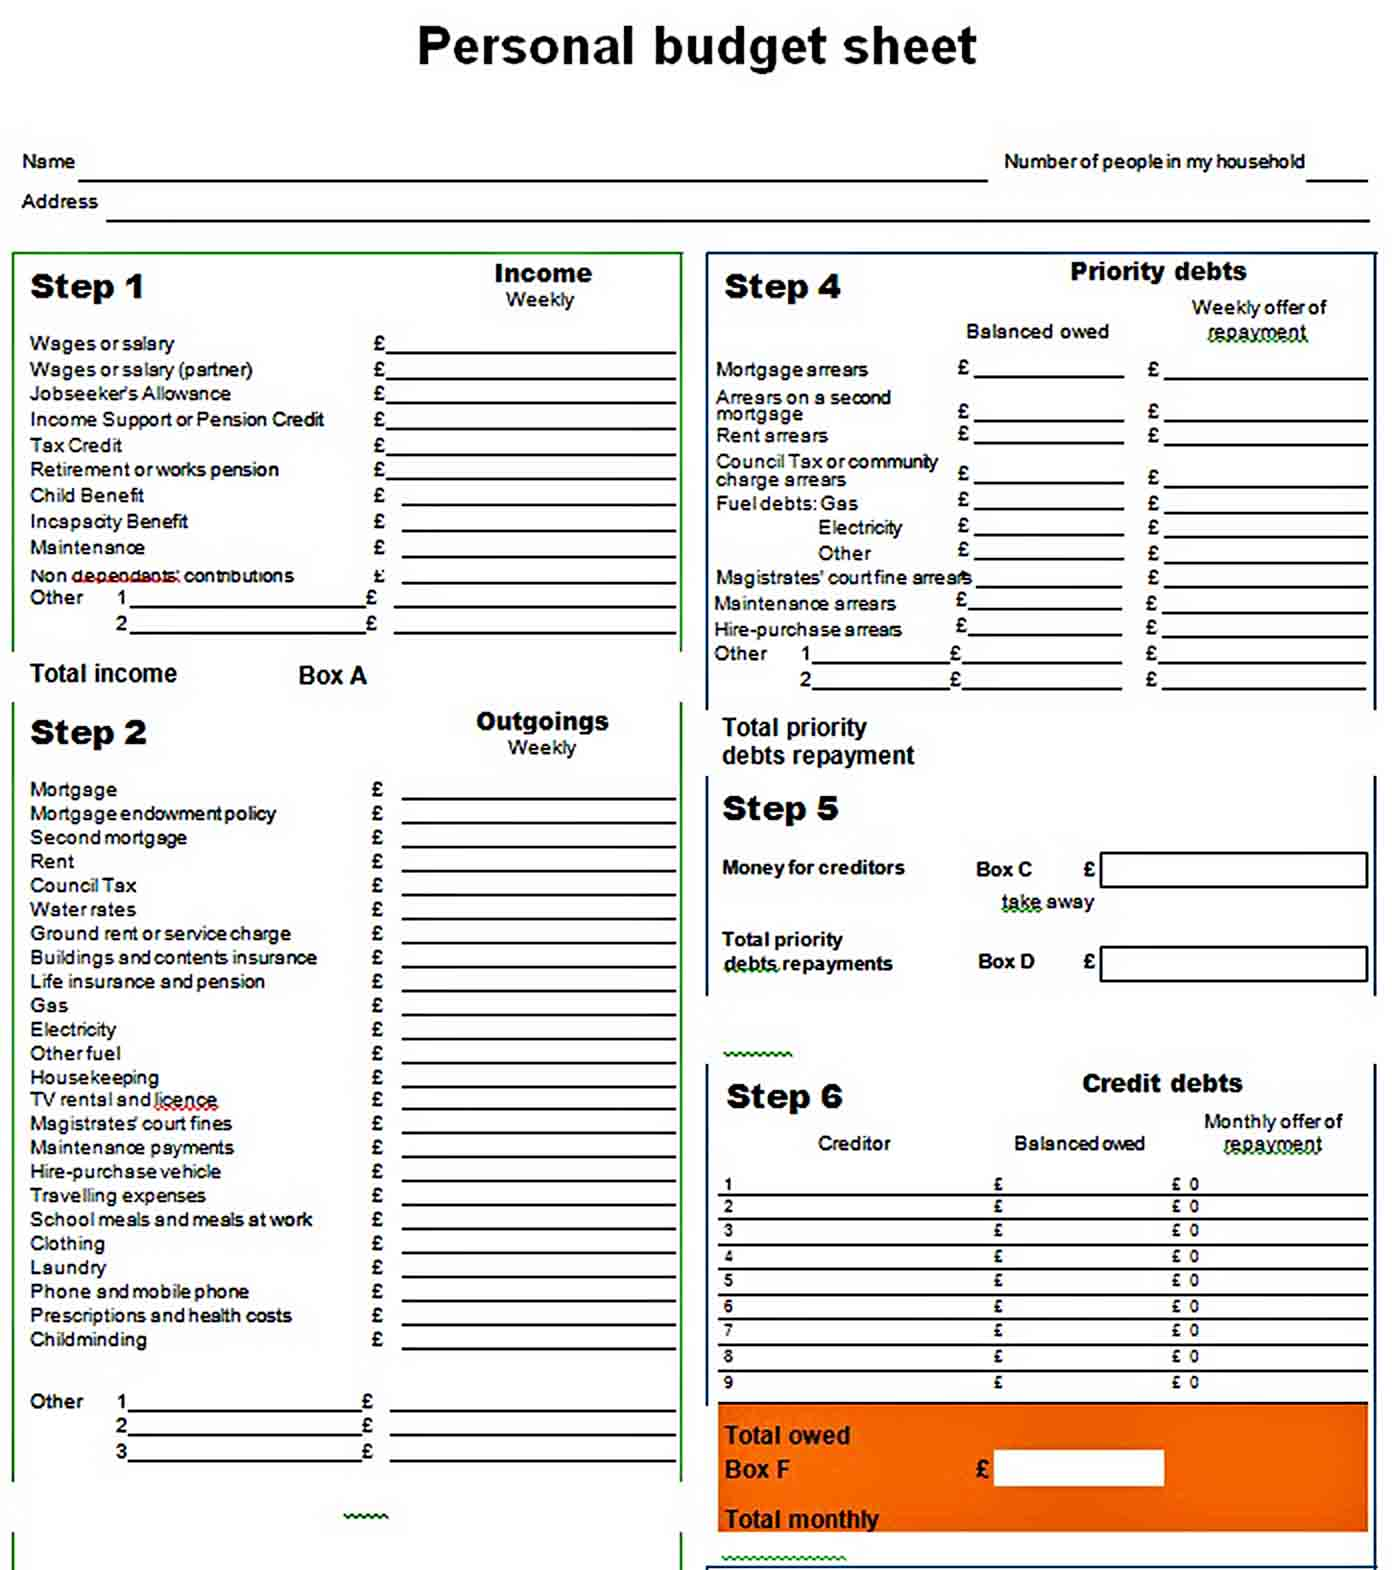 Personal Budget Sheet sample